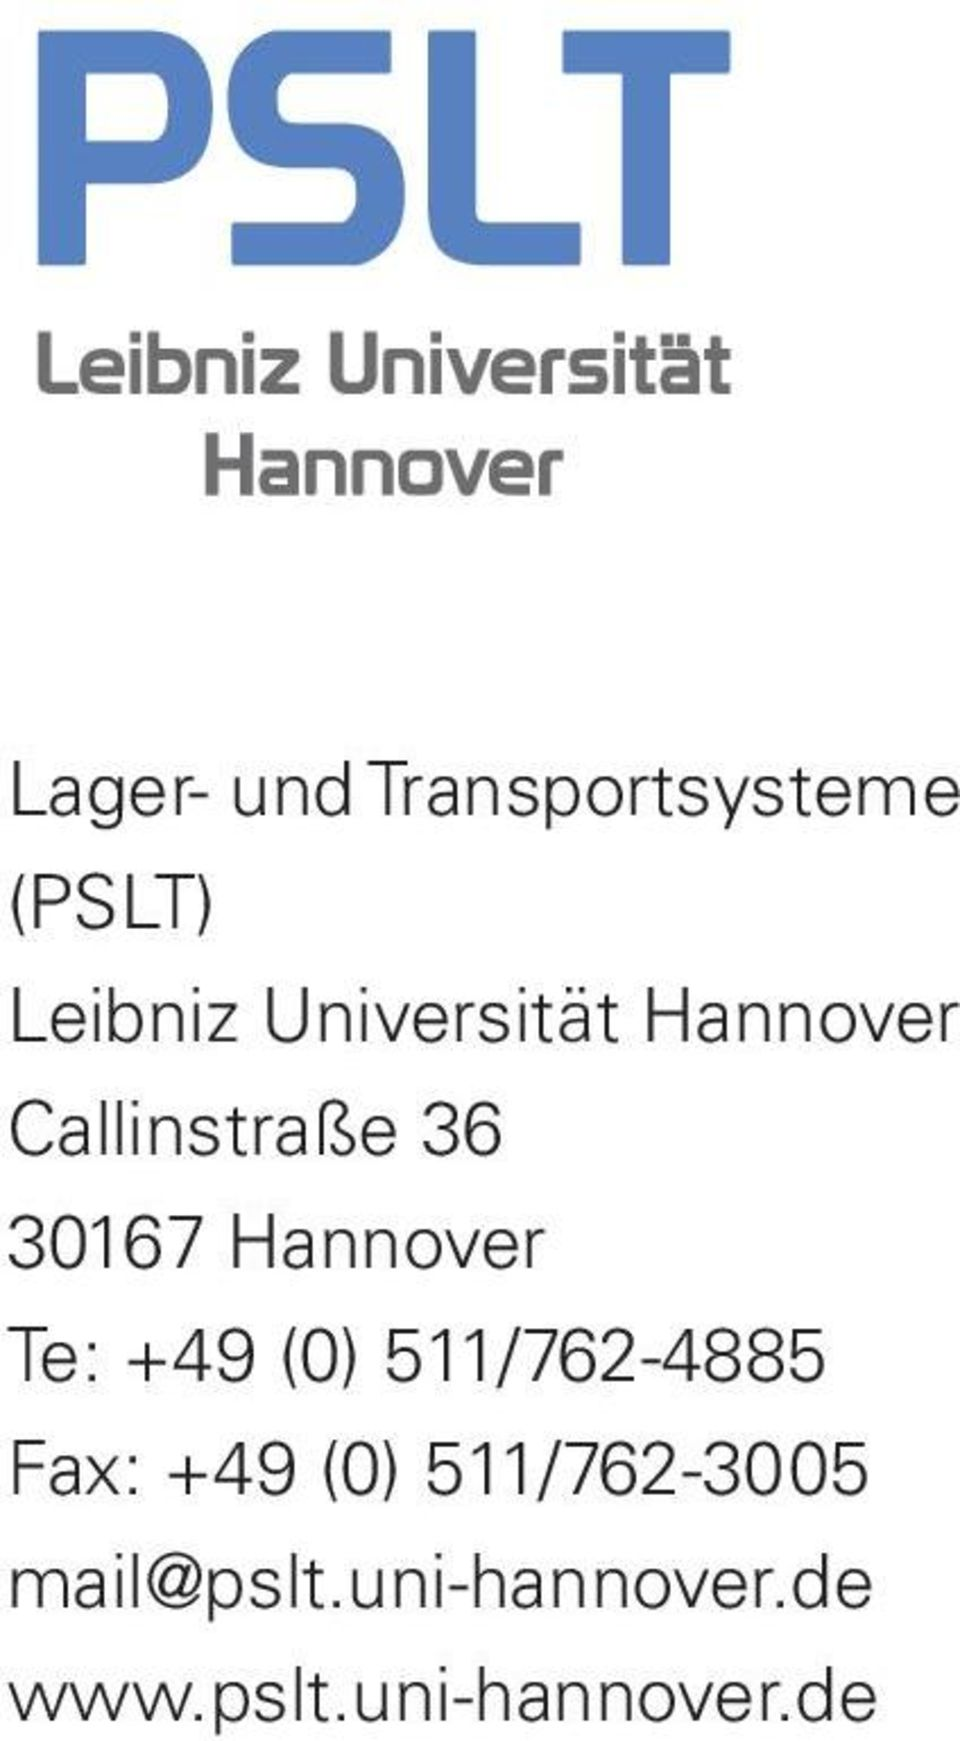 Hannover Te: +49 (0) 511/762-4885 Fax: +49 (0)